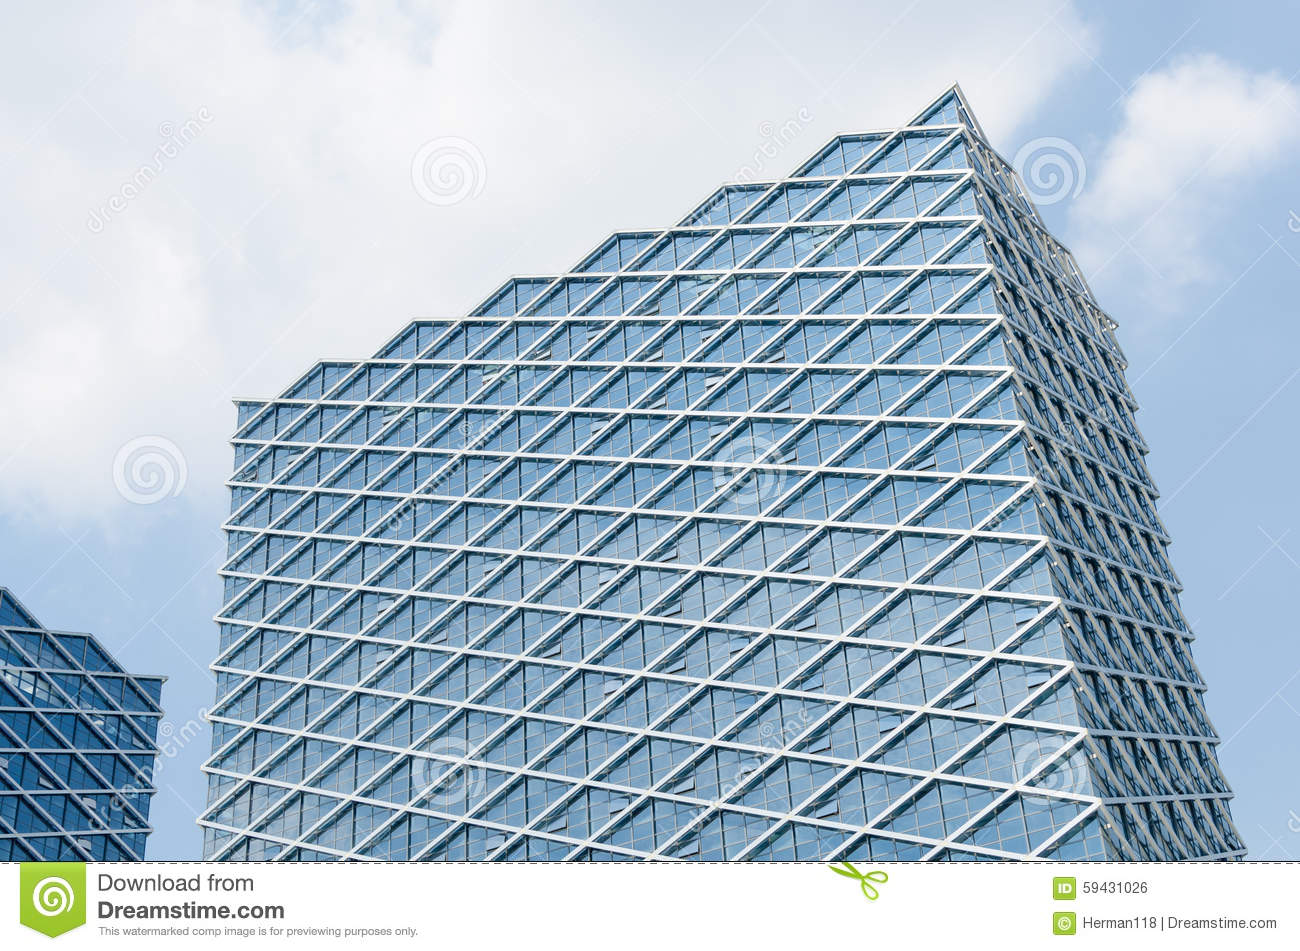 Glass Curtain Wall Architecture : At noon the modern glass curtain wall construction stock